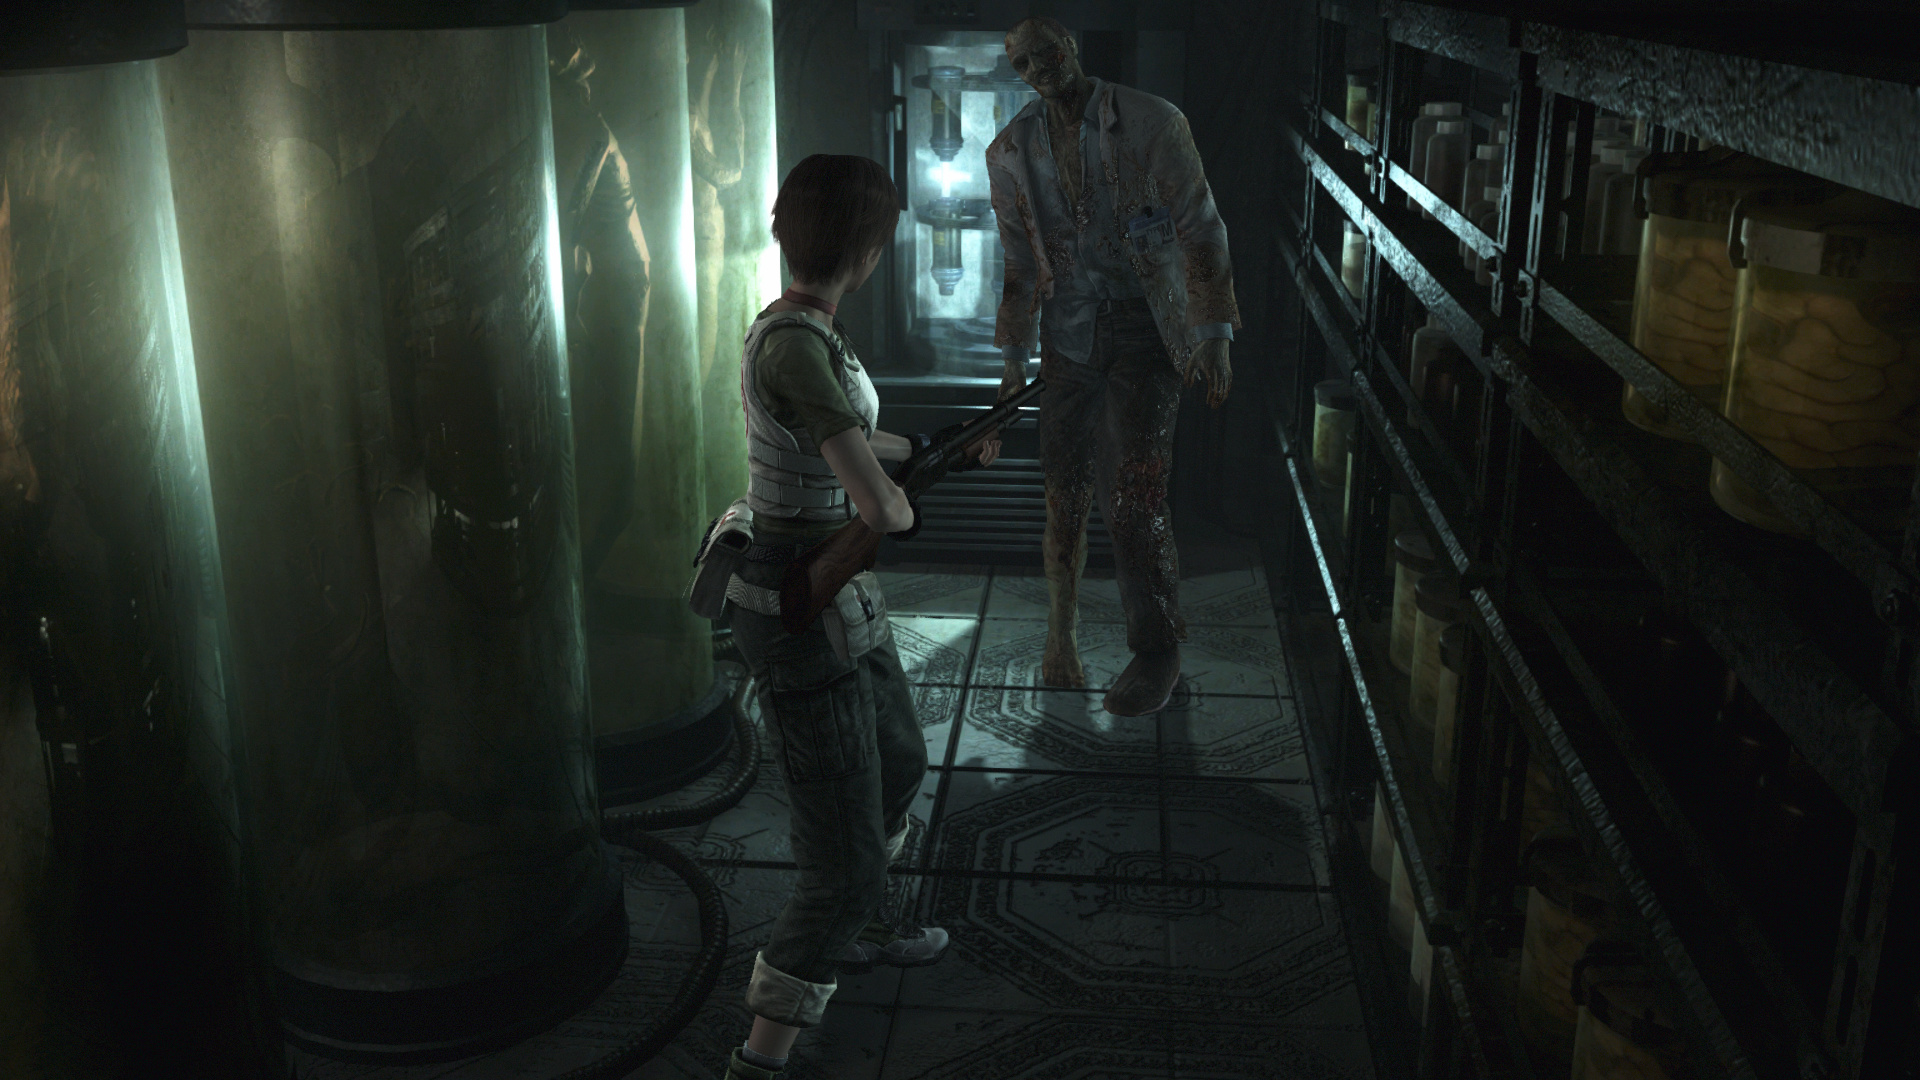 Check out new images from Resident Evil 0 HD Remaster